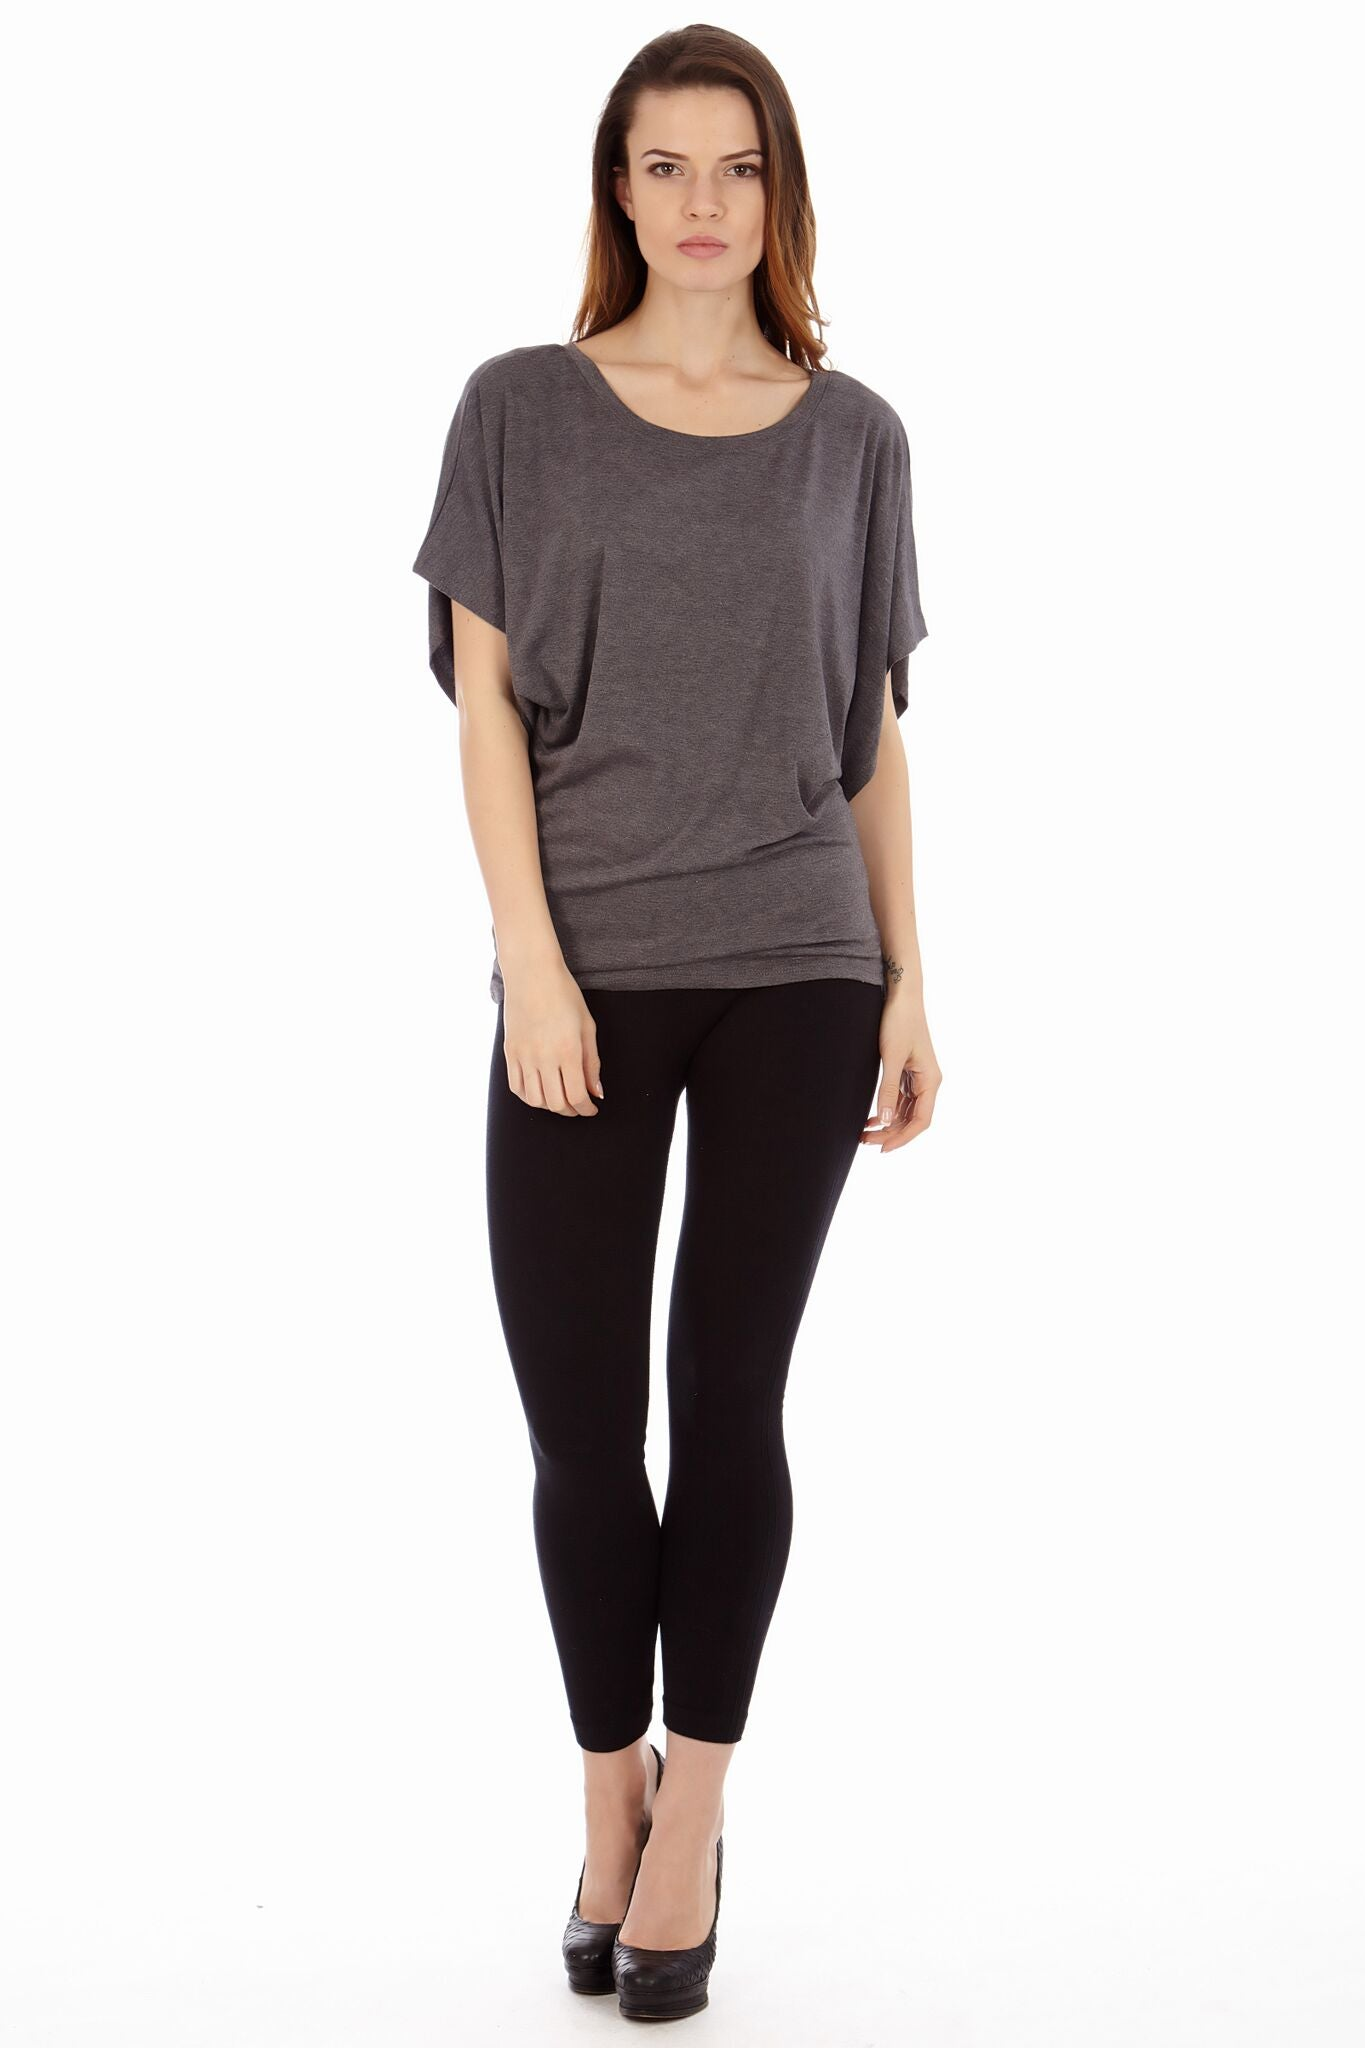 Dark Heather Gray Tunic Top